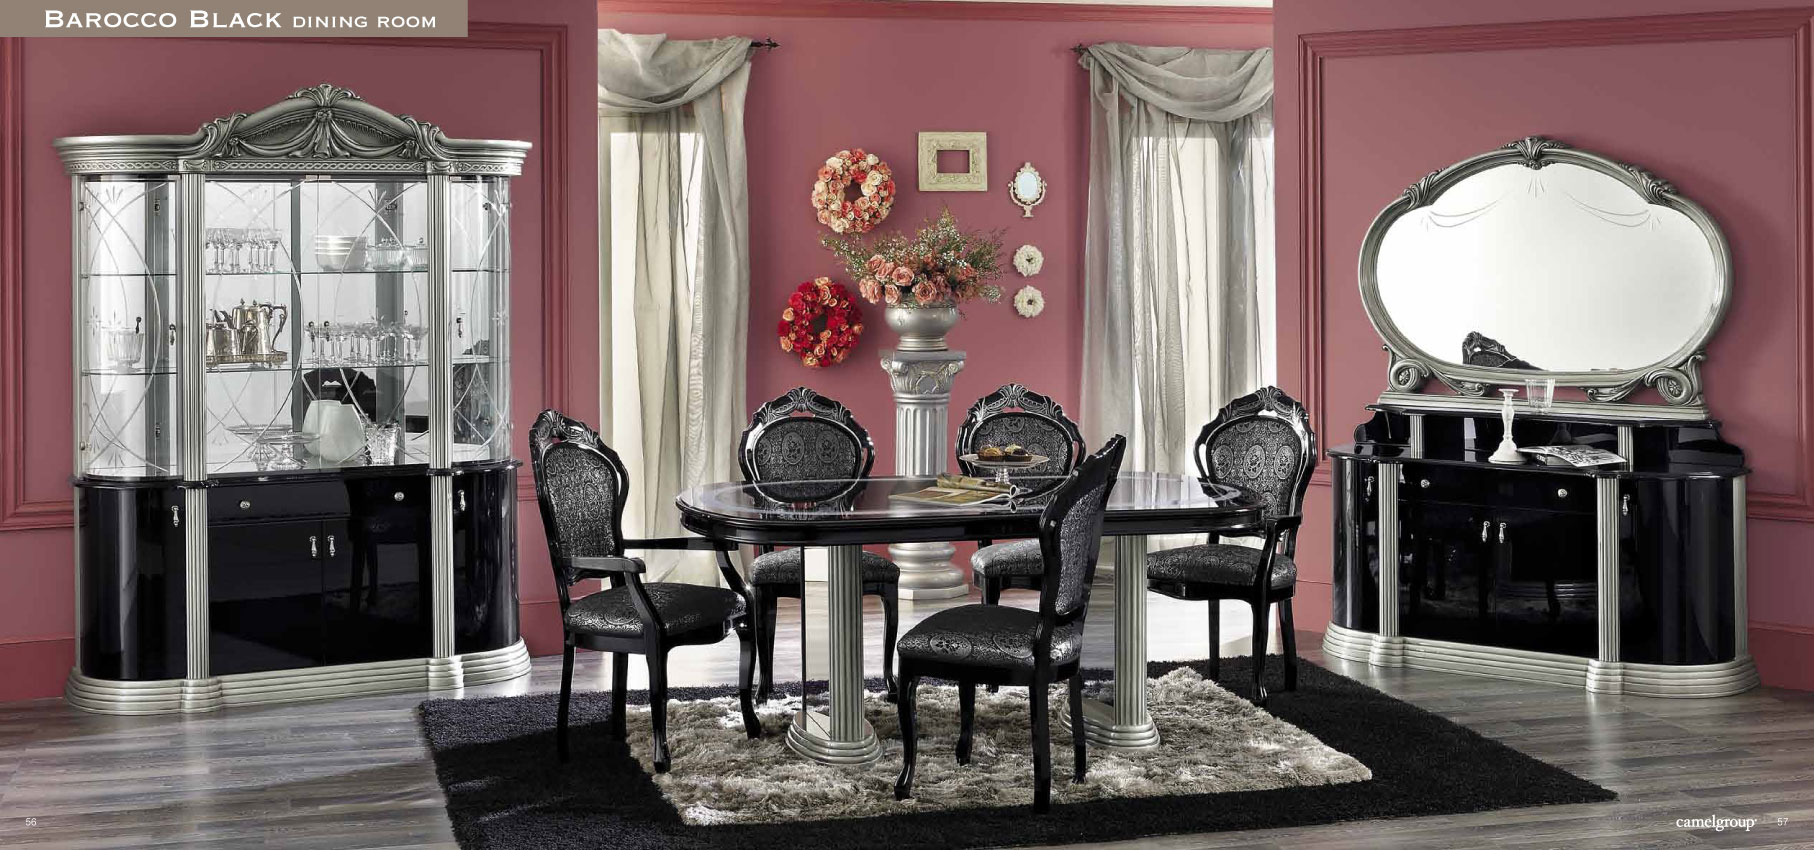 Black 7 piece dining room set